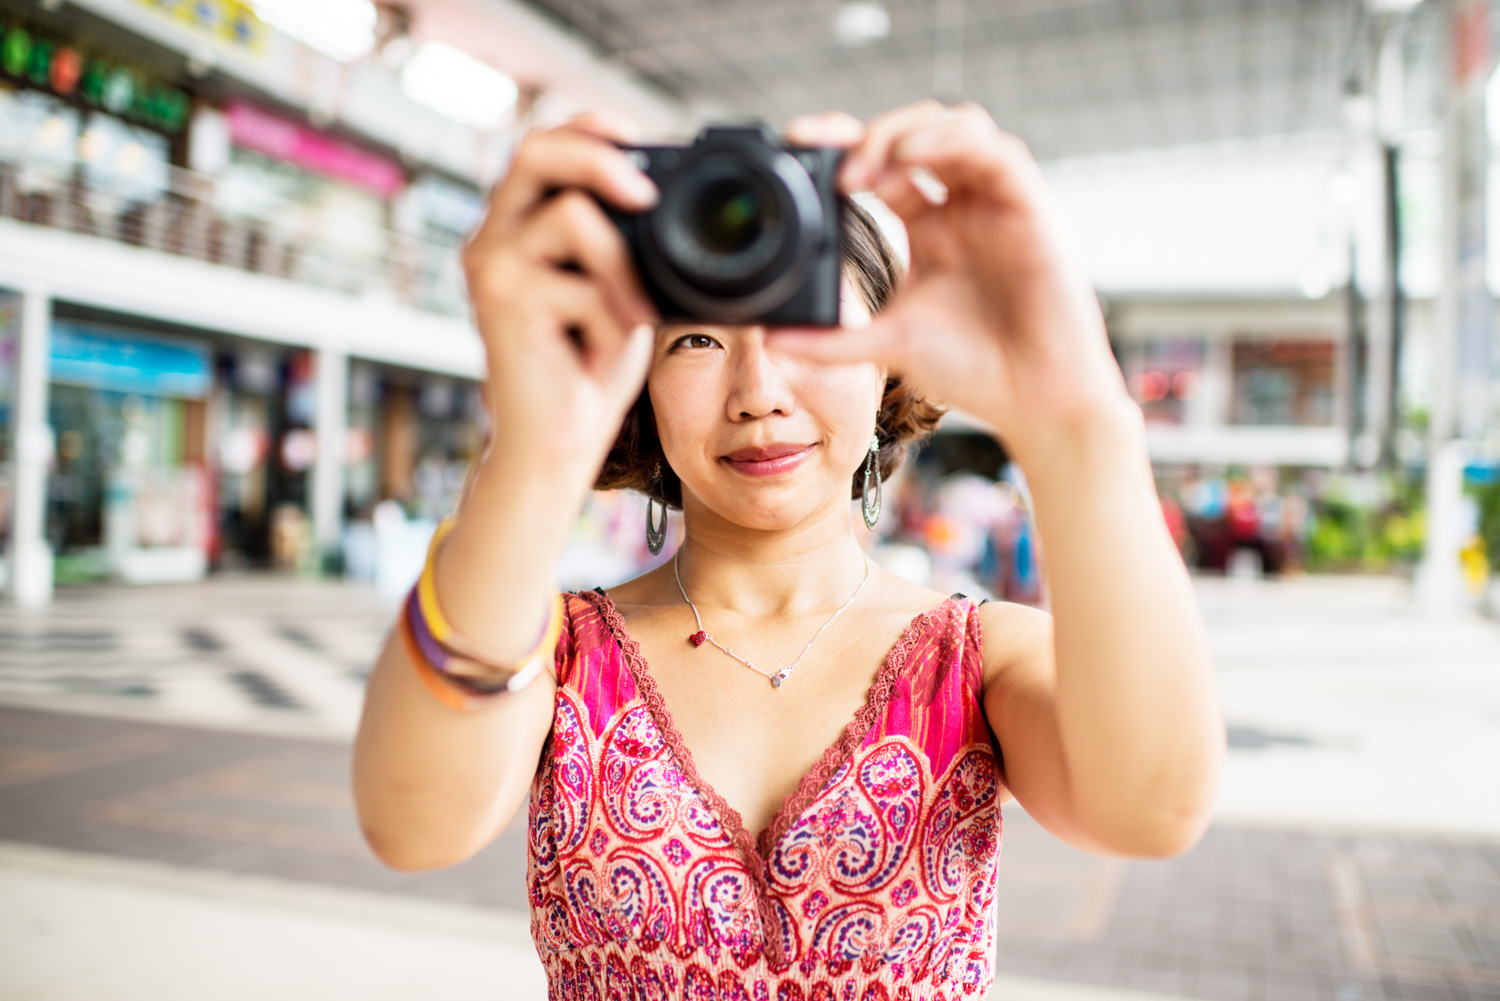 Understanding Exposure Metering Modes Woman Photographer at the Shopping Mall